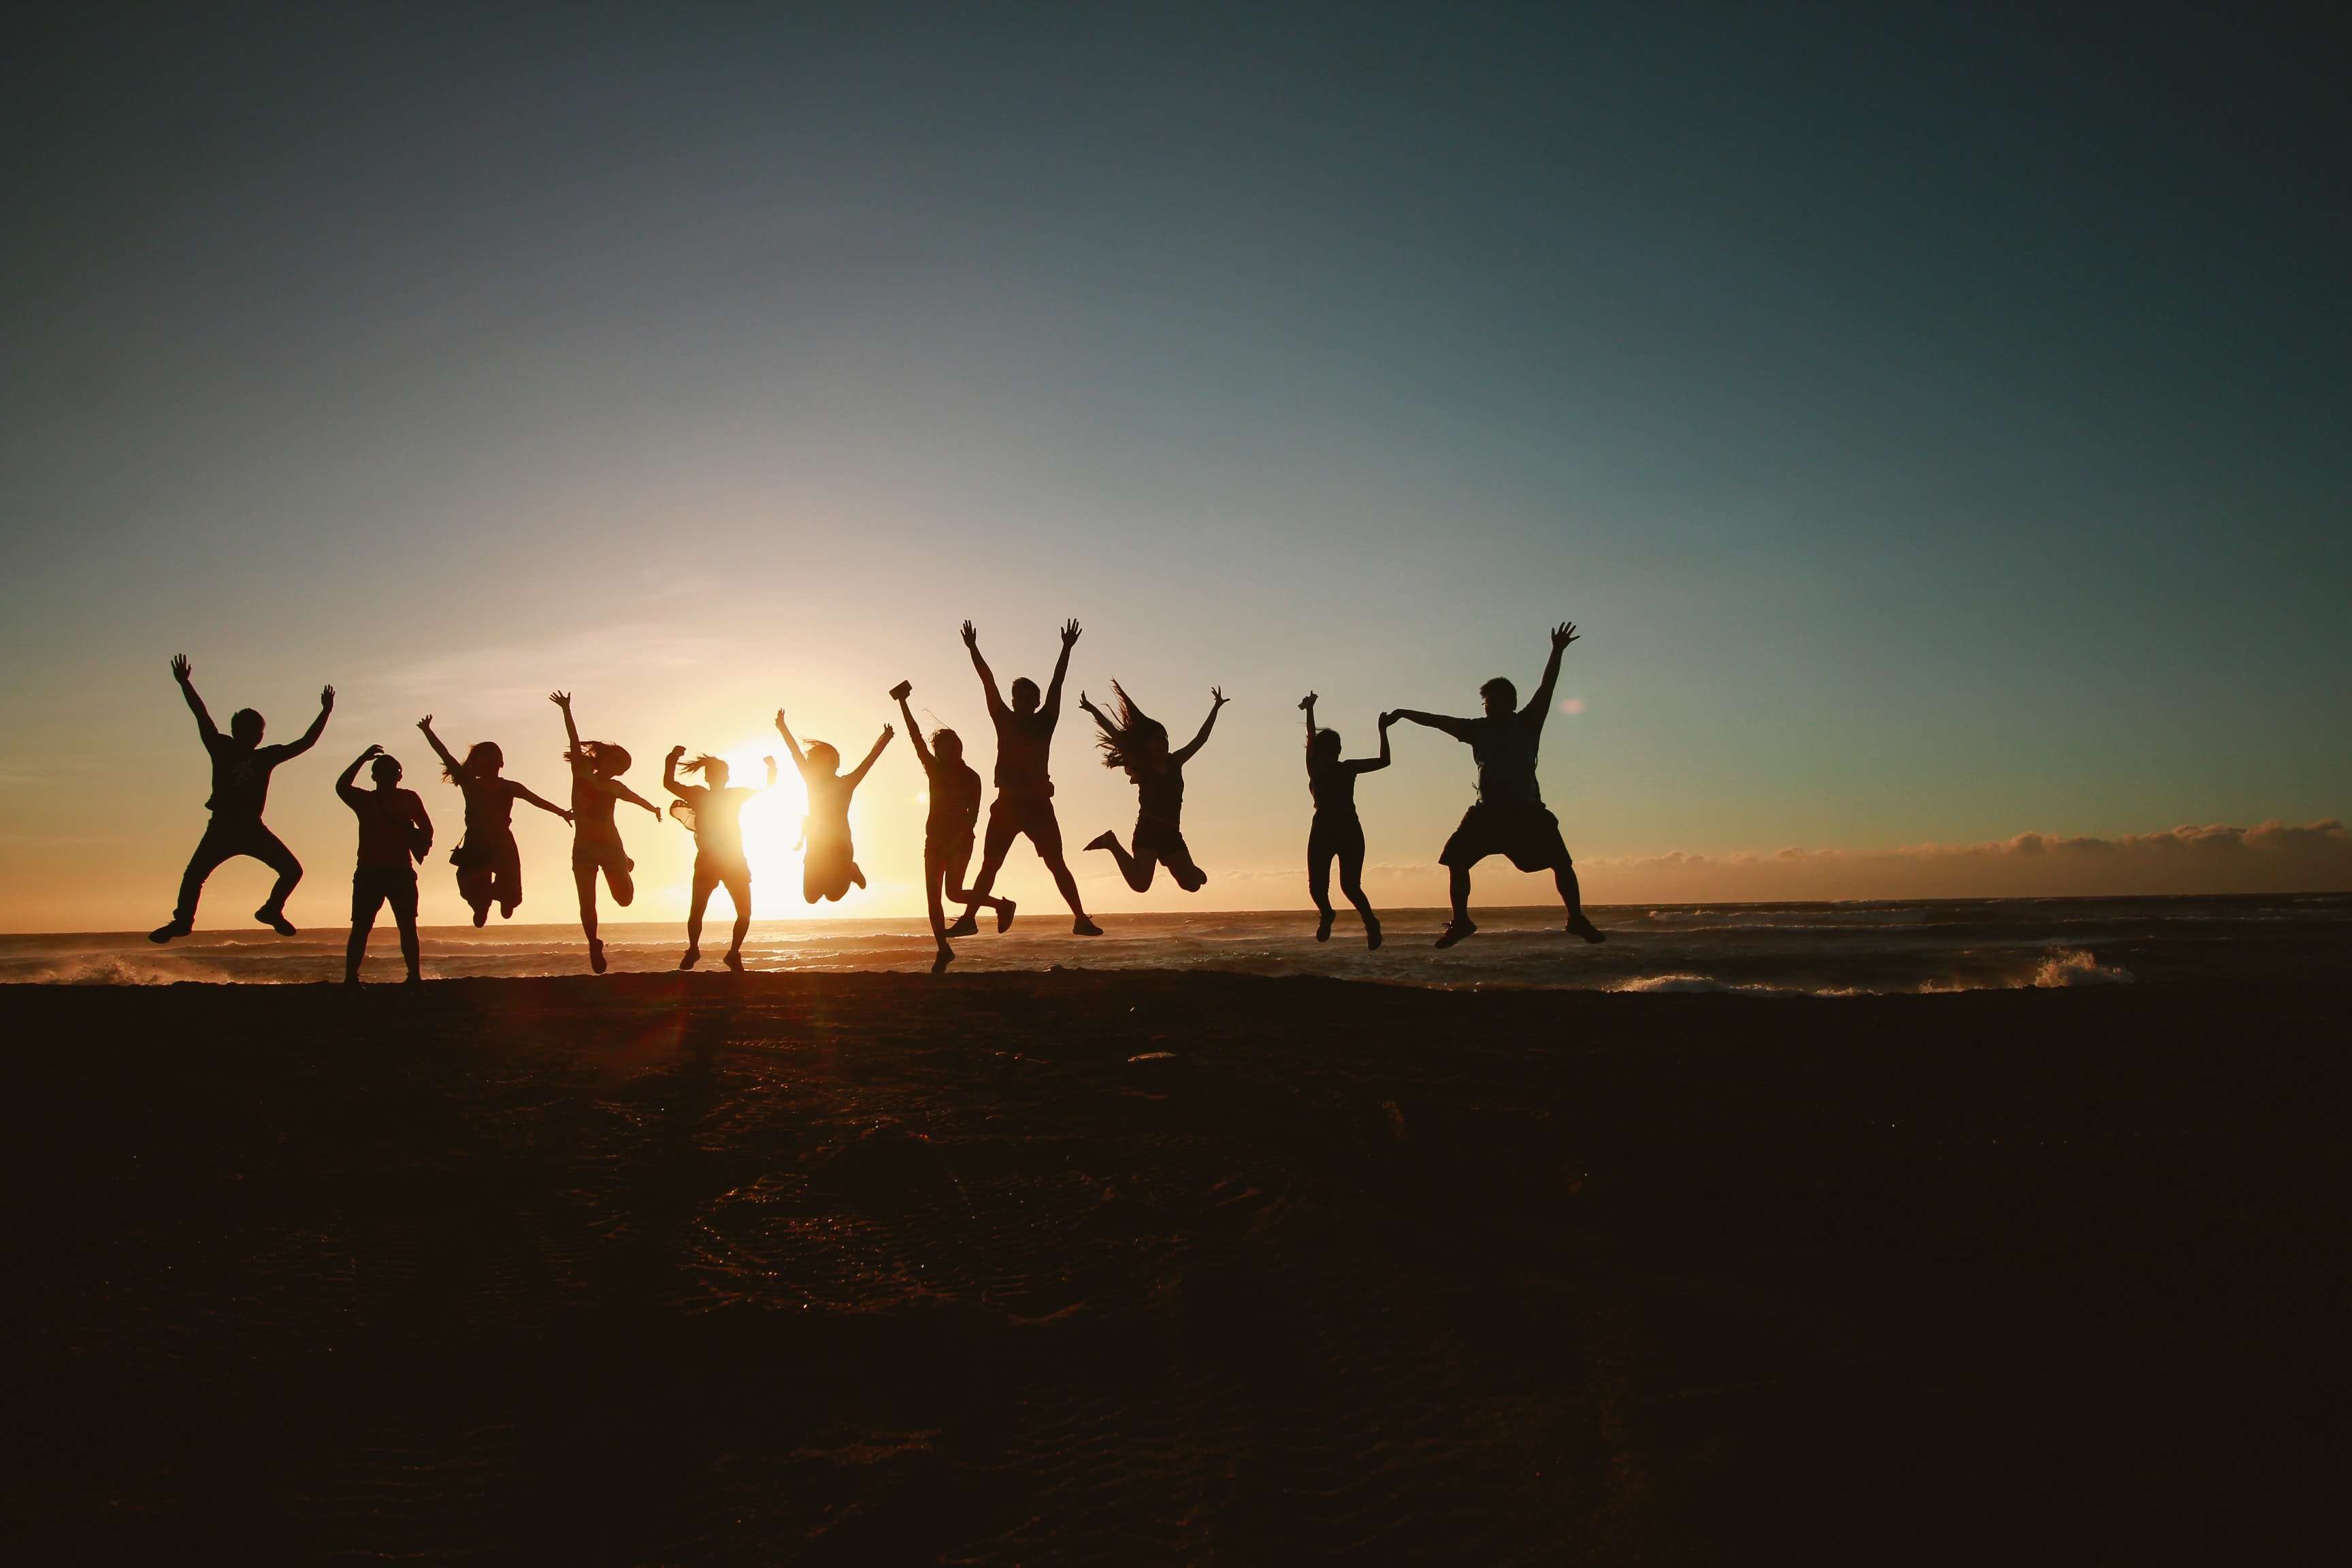 silhouette-photography-of-group-of-people-jumping-during-1000445